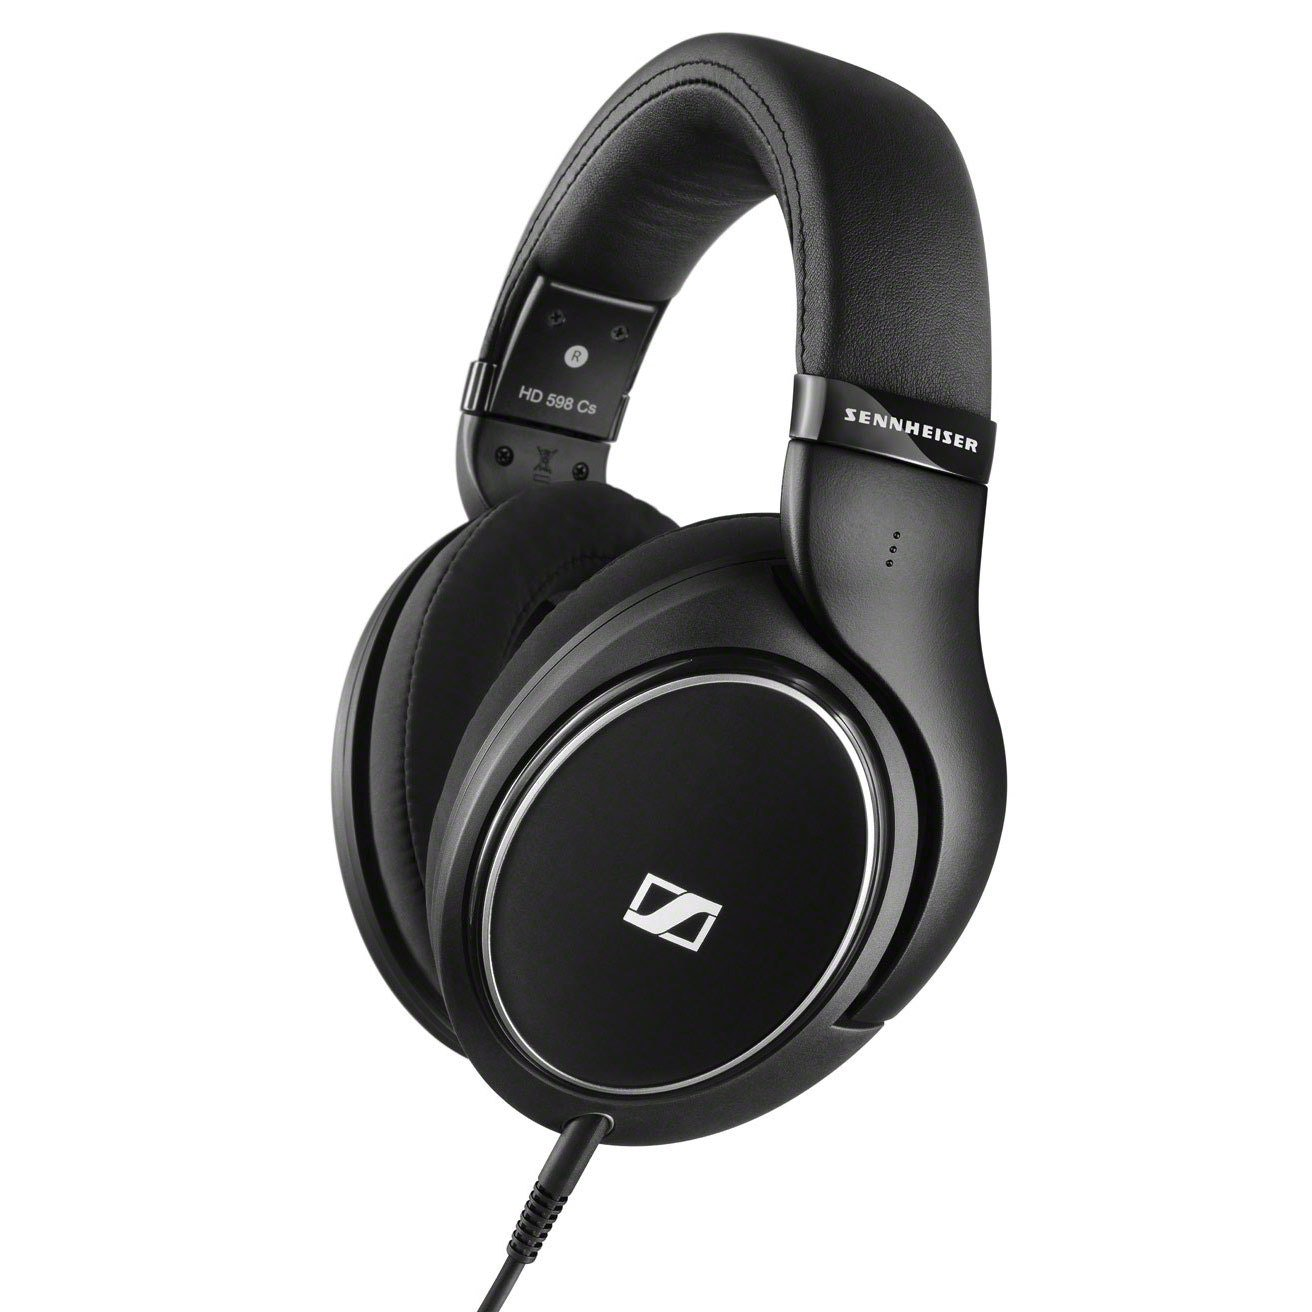 Sennheiser HD 598 Cs Closed Back